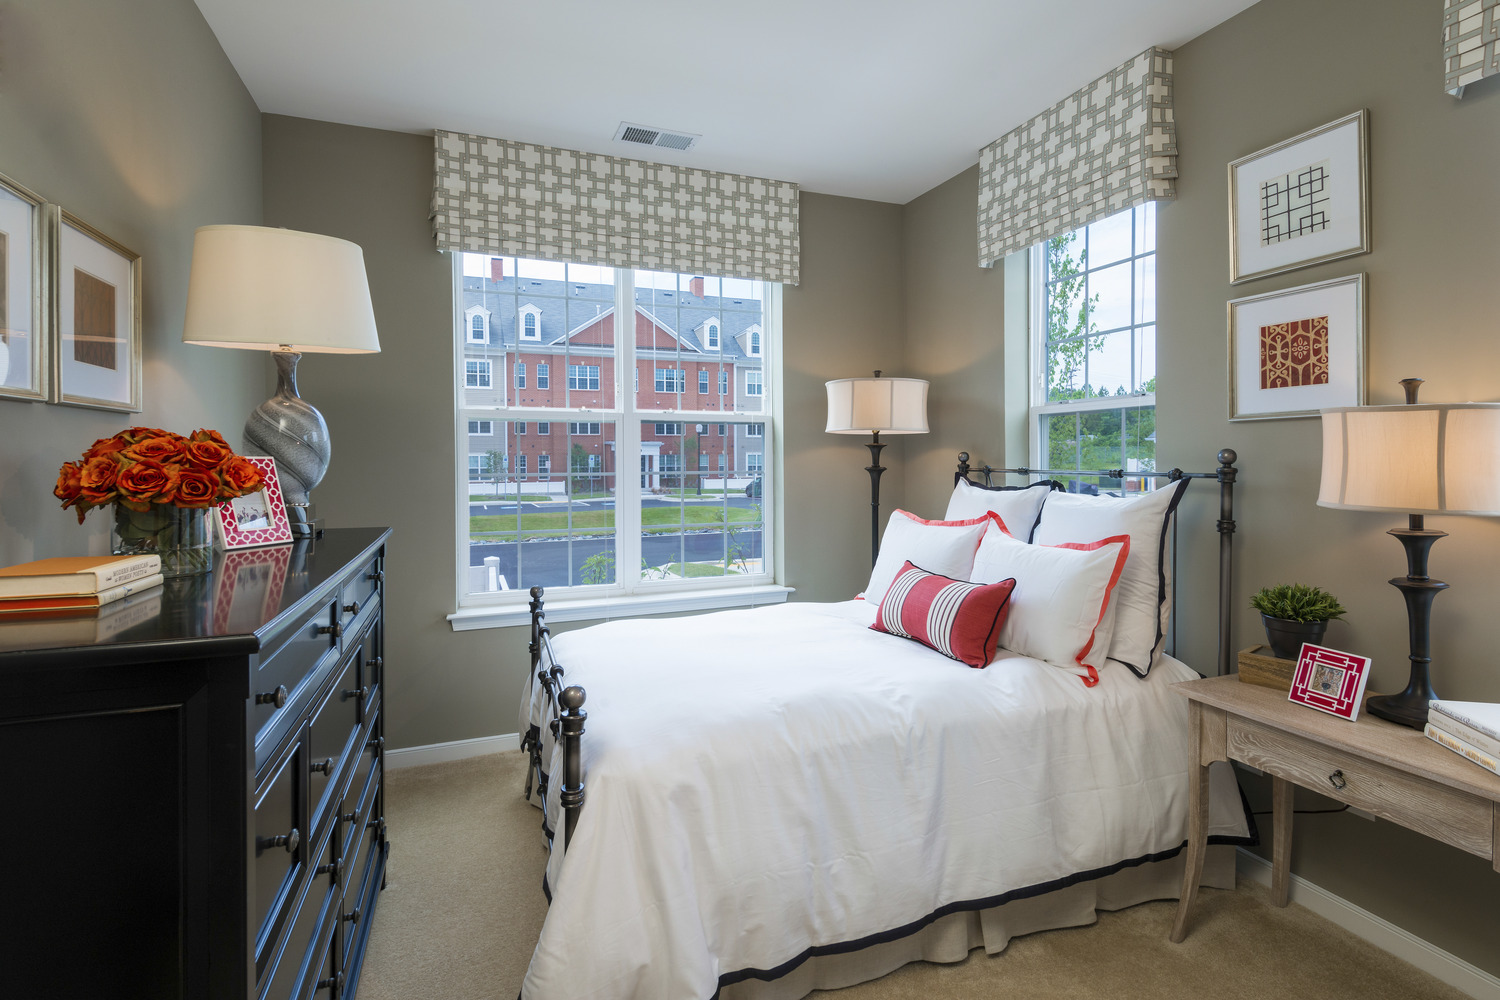 CBG builds Creekstone Village Apartments, a 193-Unit Affordable Garden-Style Apartment Community in Pasadena, MD - Image #3